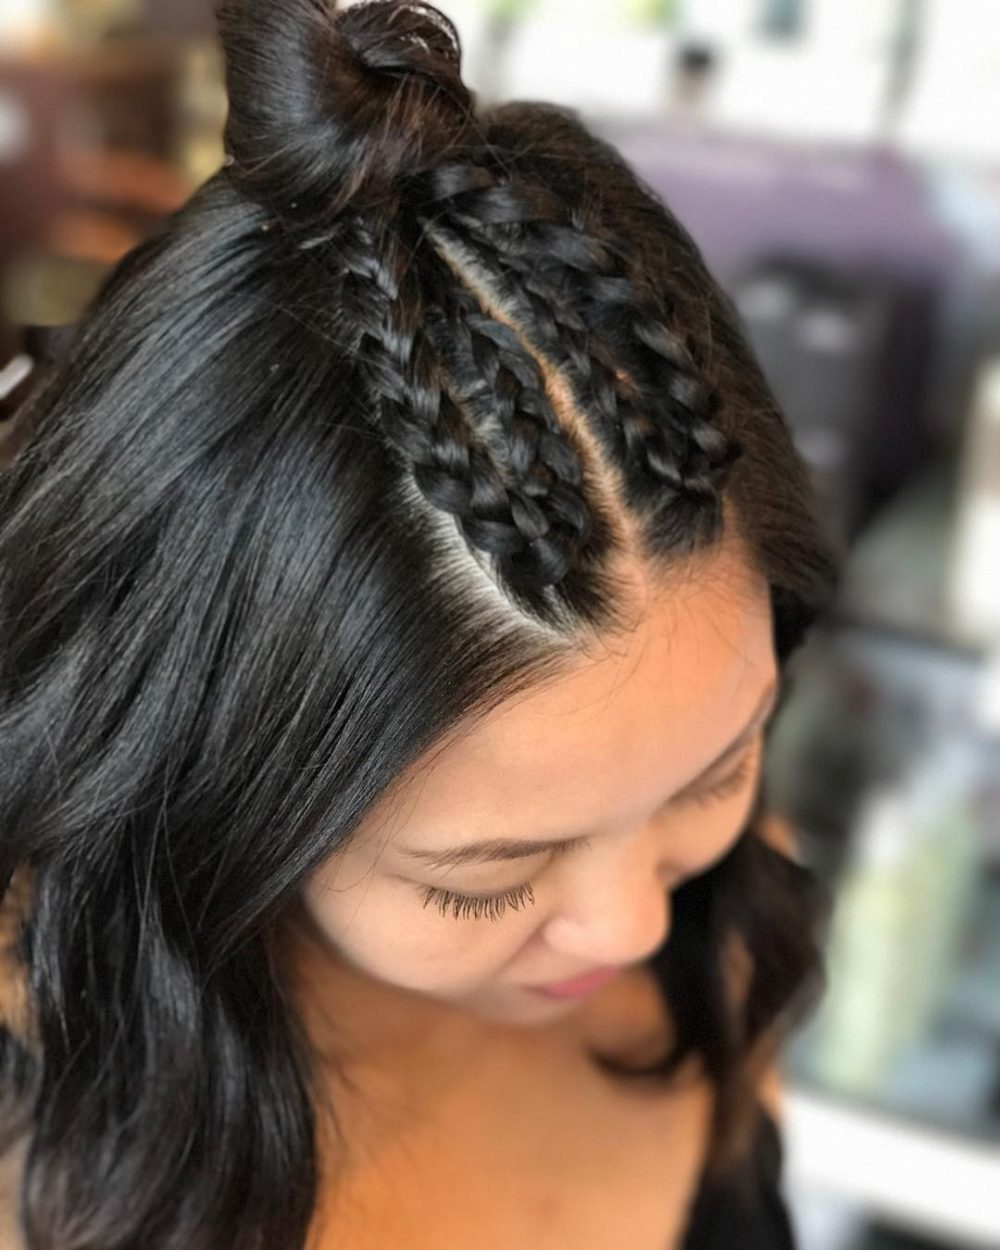 9 Sexiest French Braid Hairstyles That Are Easy to Try